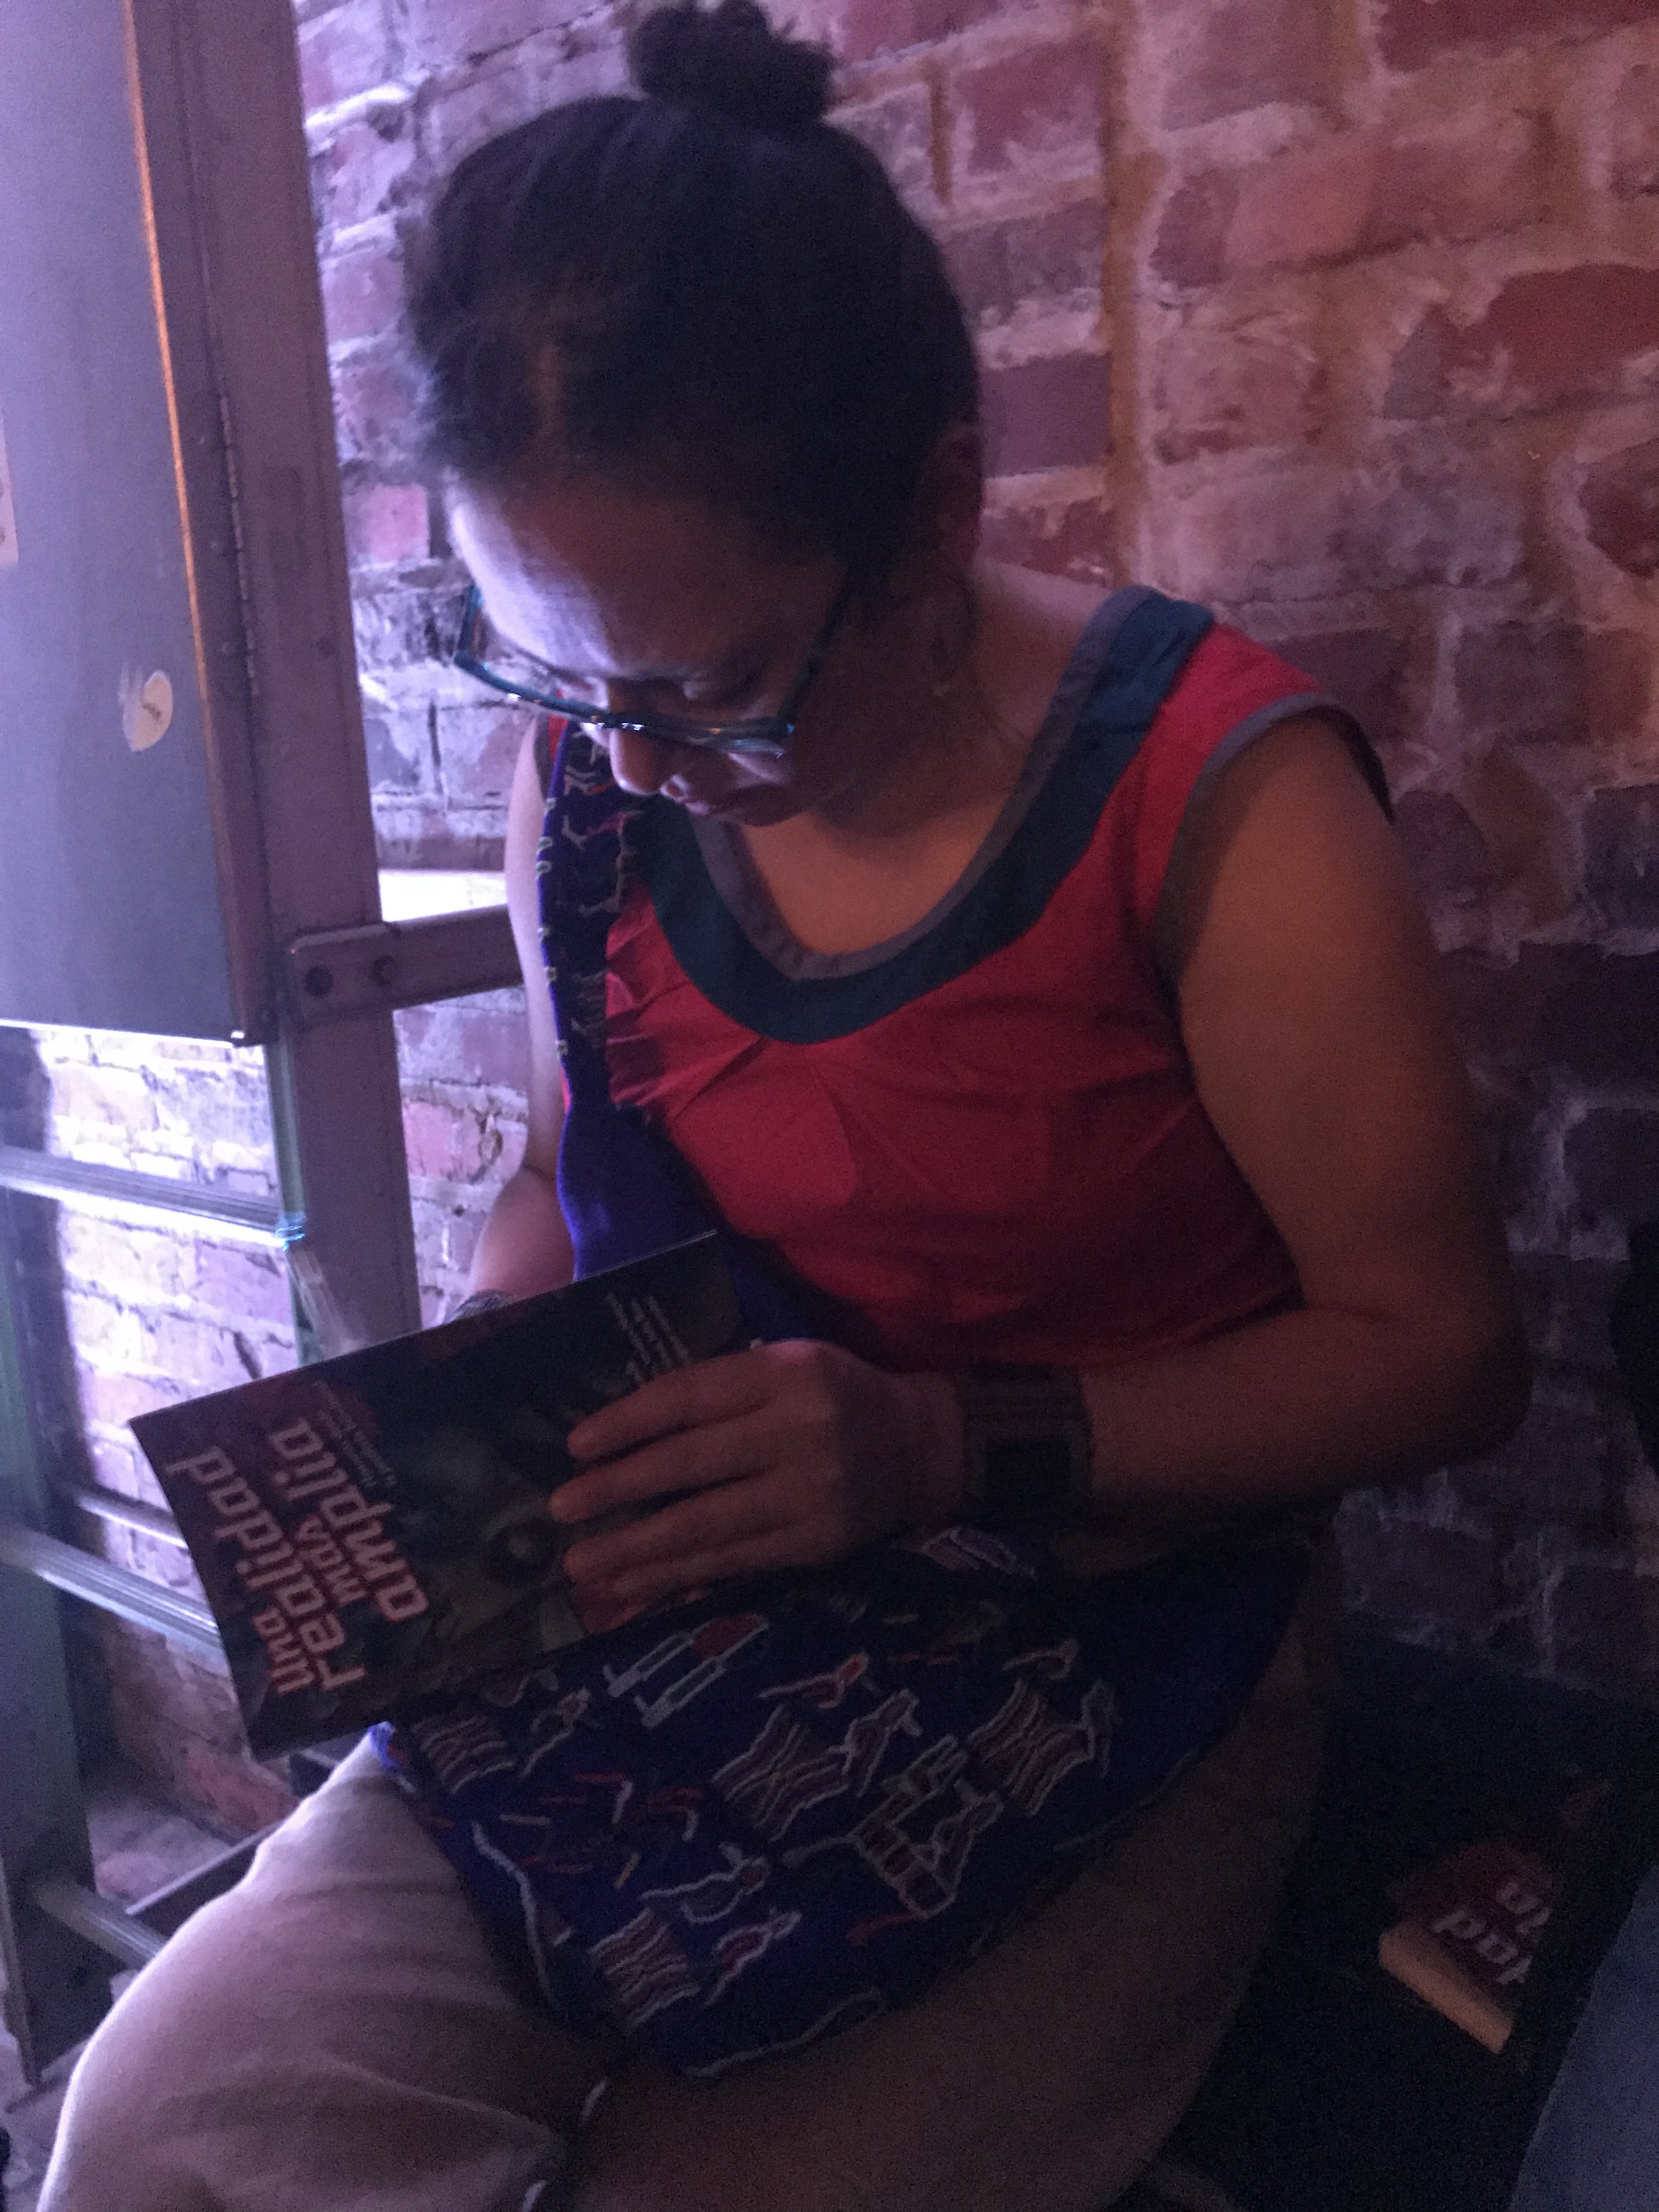 Libia Brenda holding a copy of the anthology she edited (Photo by Julia Rios)